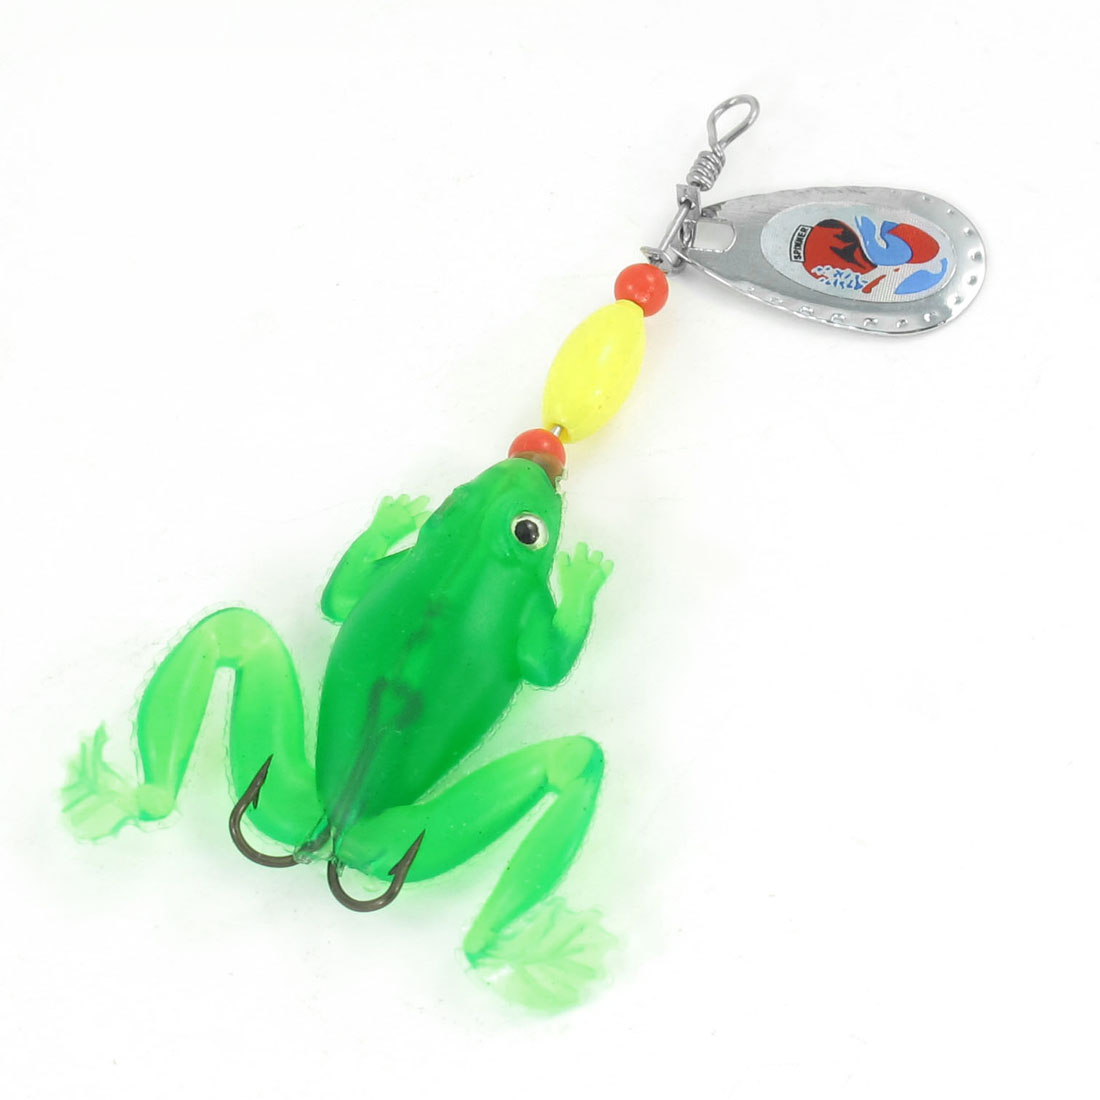 Green Silicone Frog Design Fish Lure Bait Fishing Hook